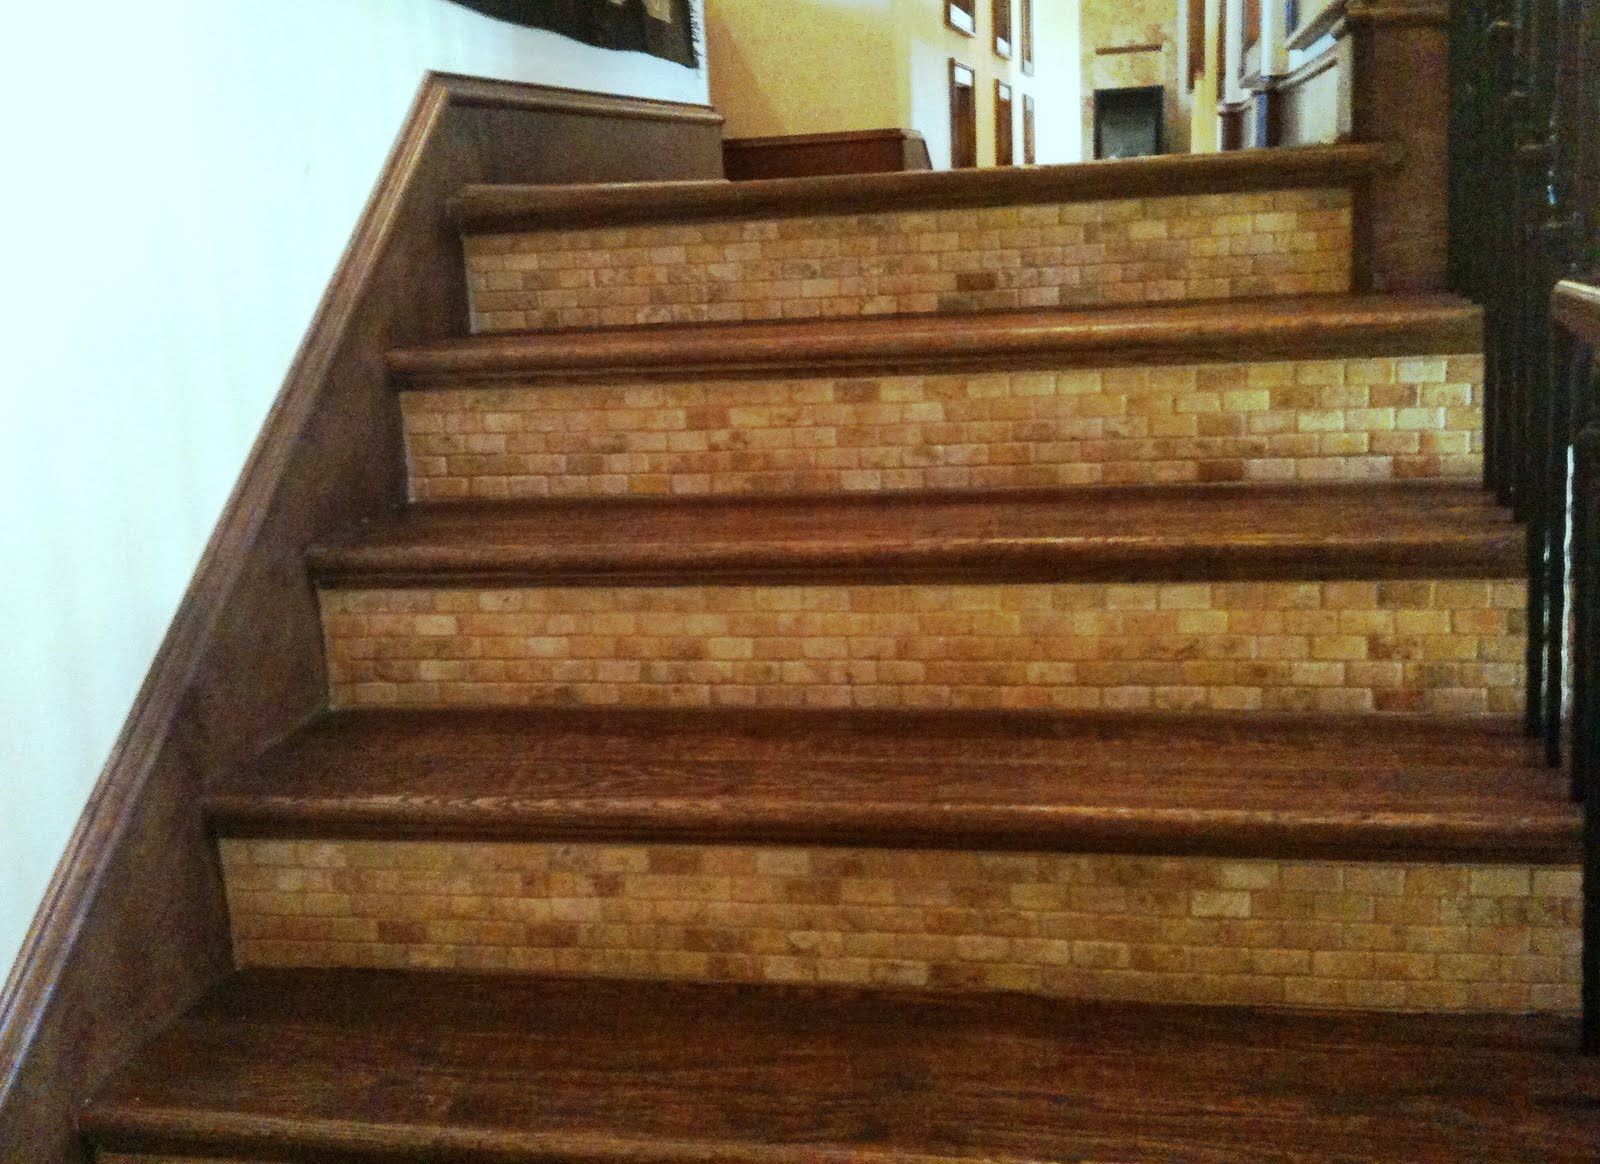 Stones Tile Stairs Risers Tile Wood And Tile Stairs